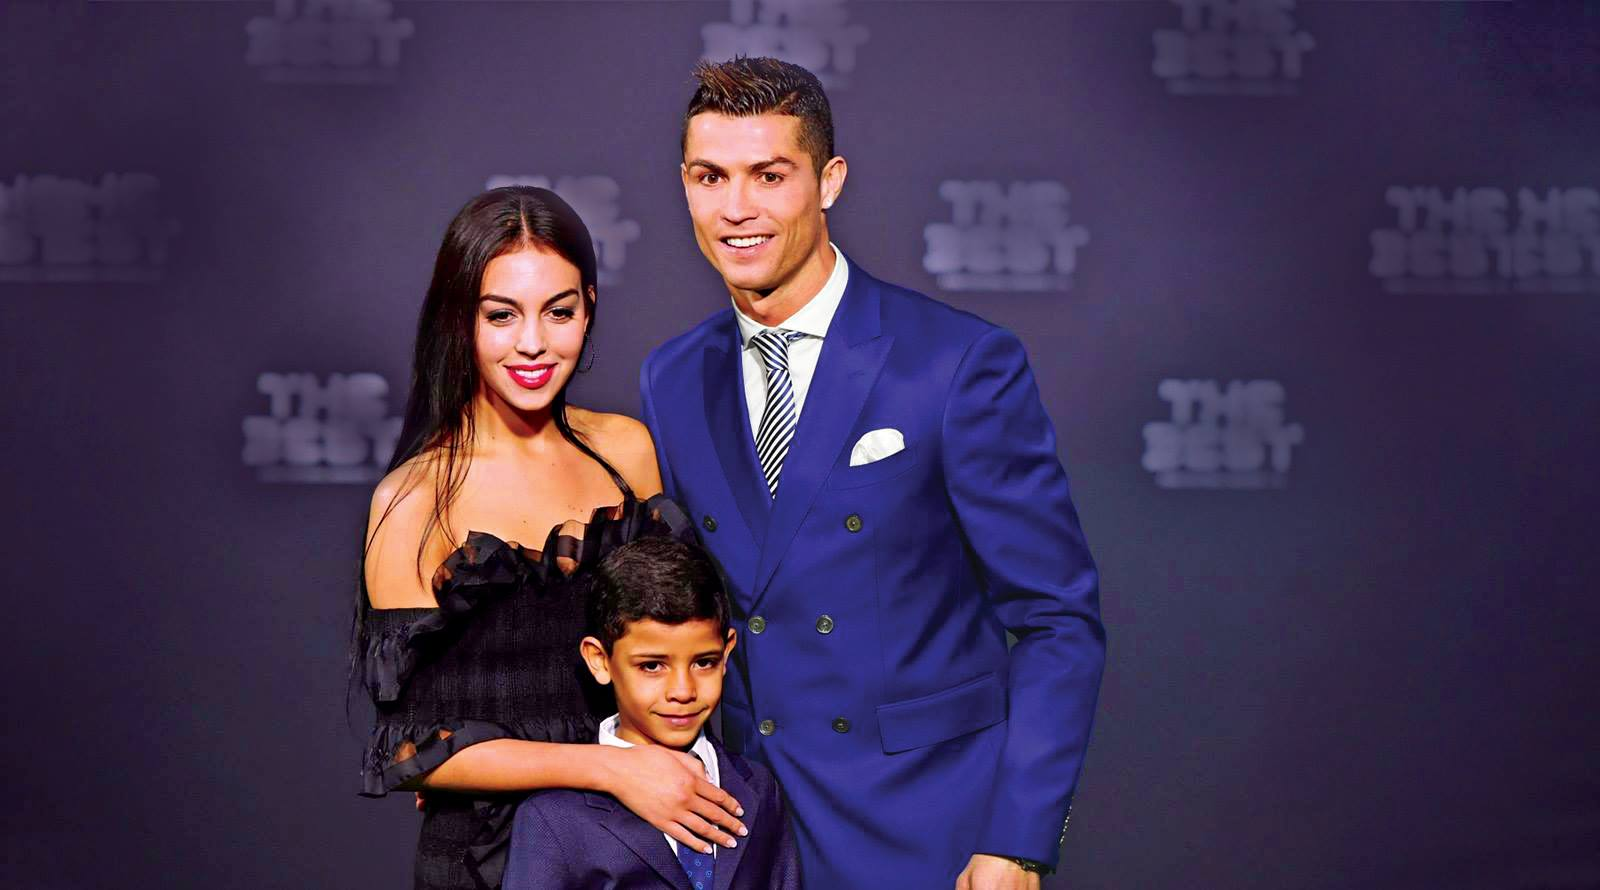 Cristiano-Ronaldo-with-girlfriend-Georgina-Rodriguez1